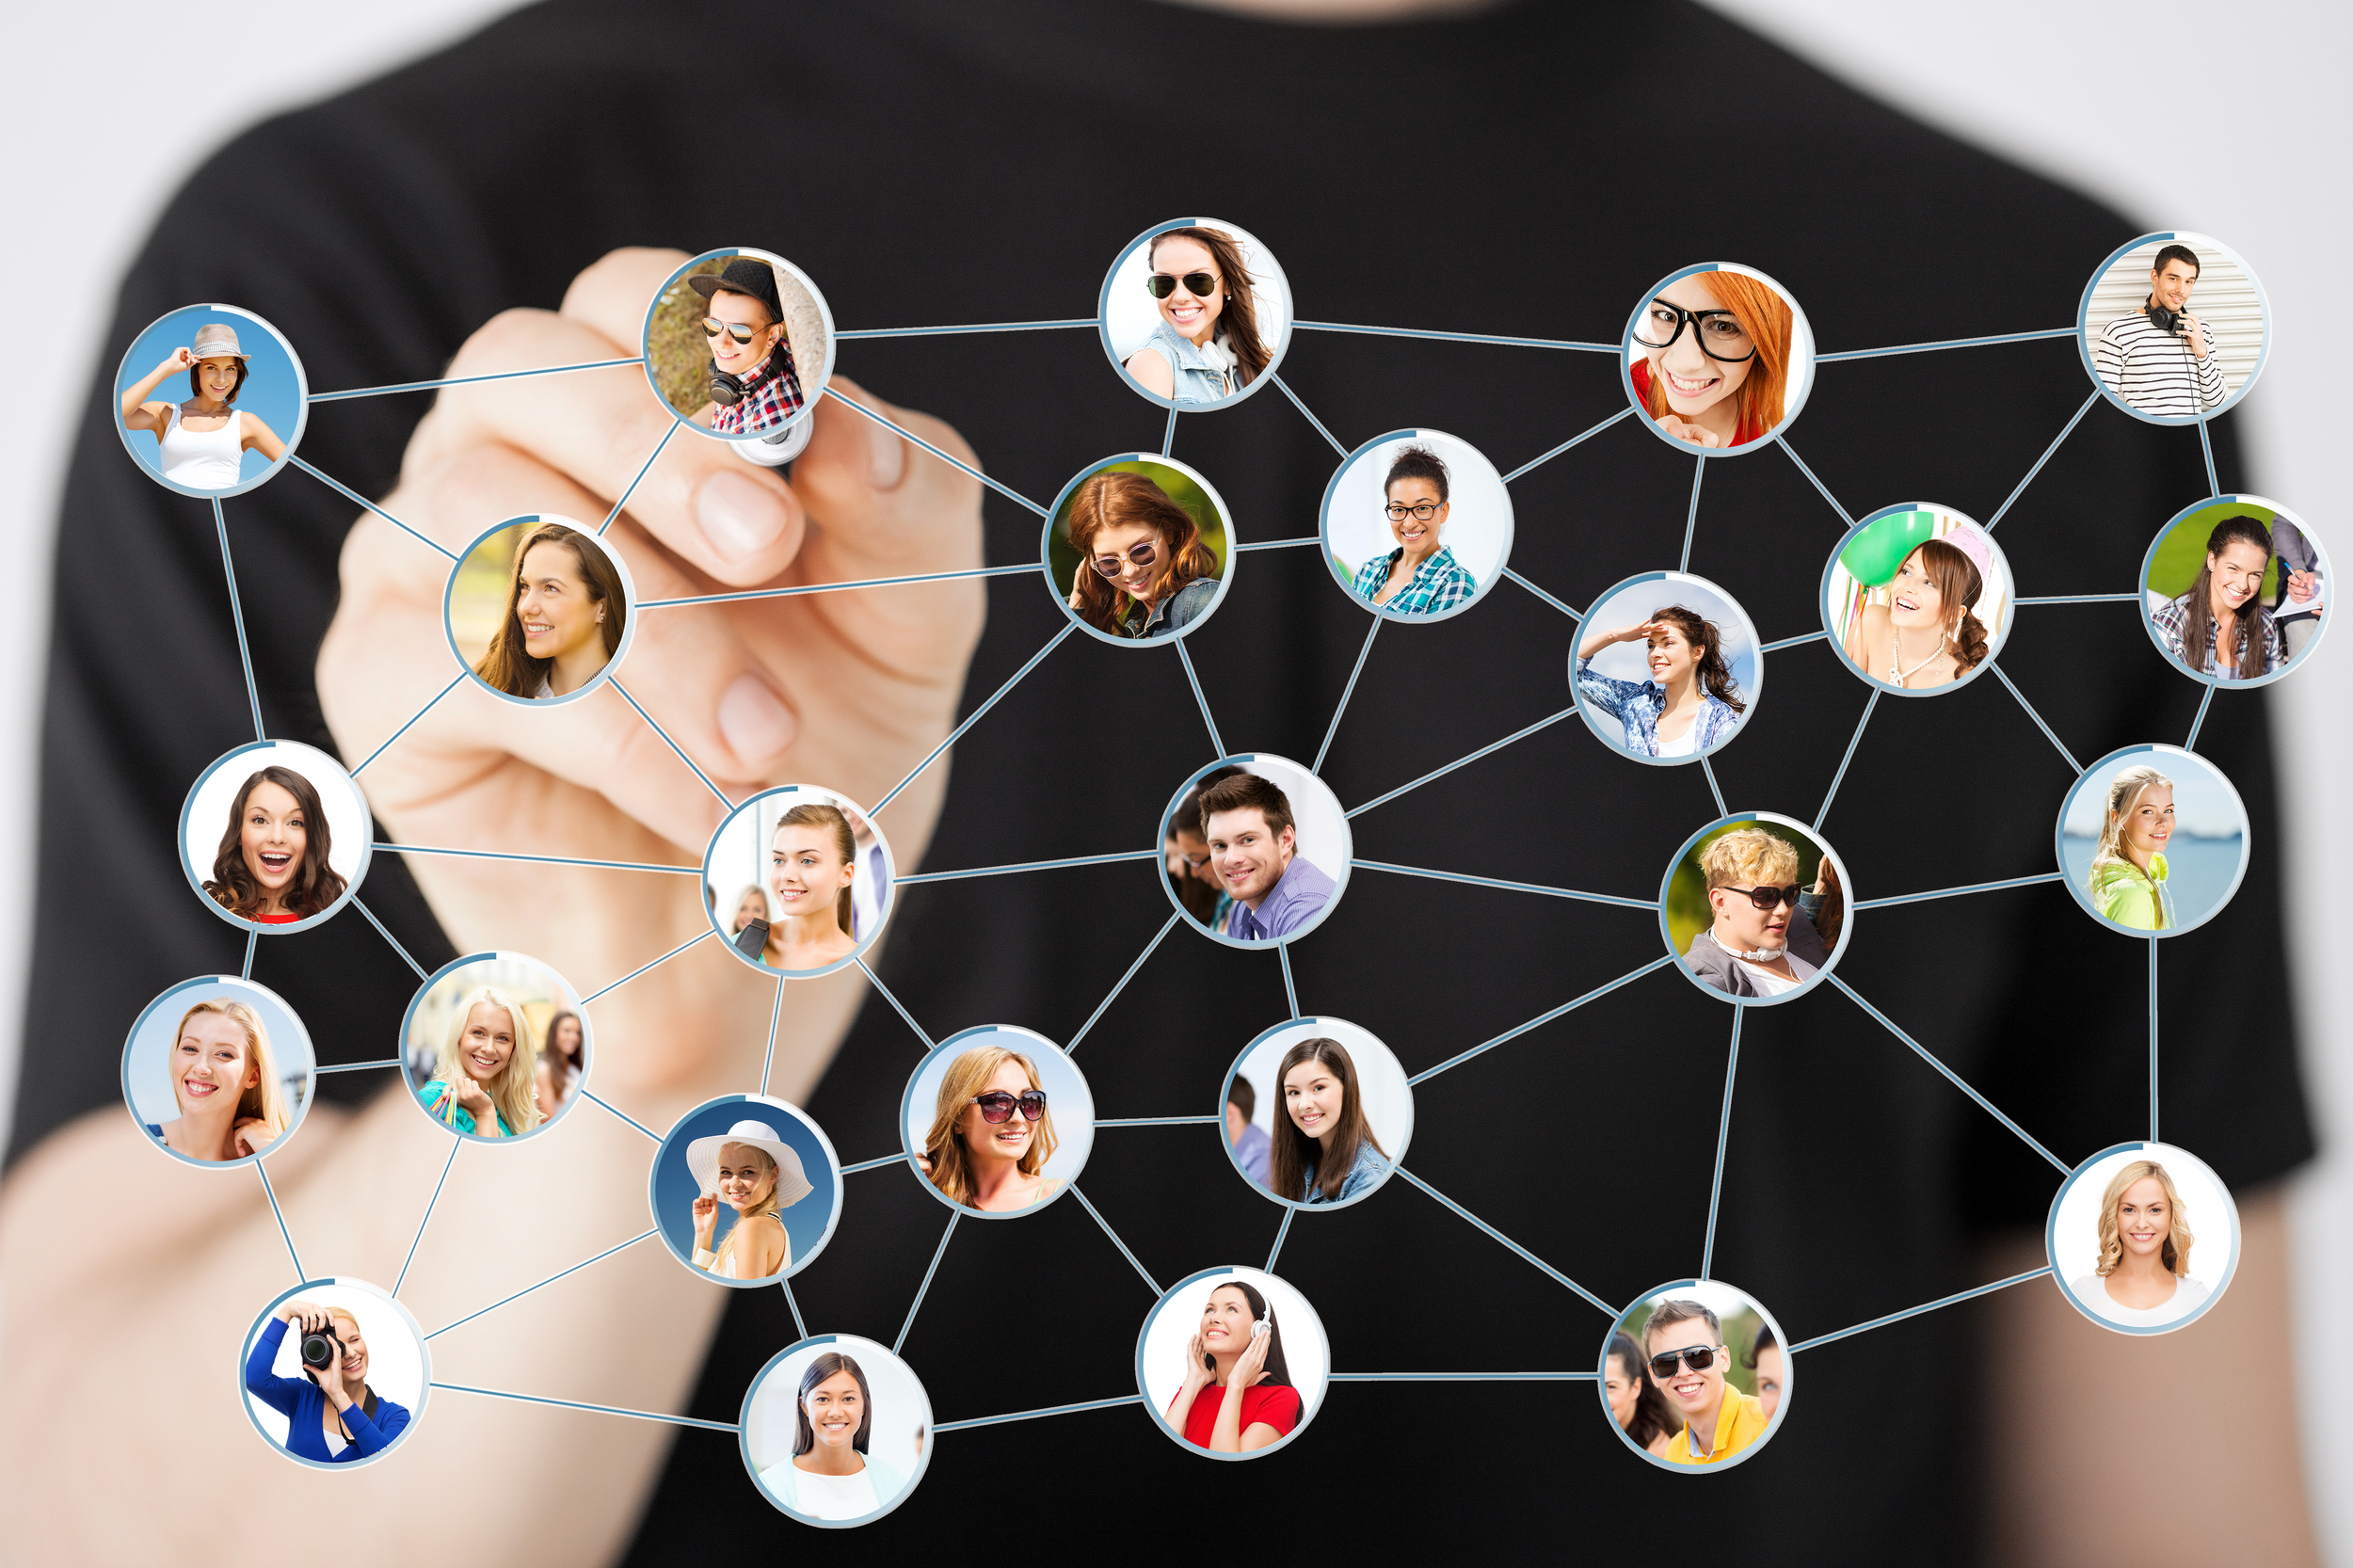 healthy relationships and connections for success